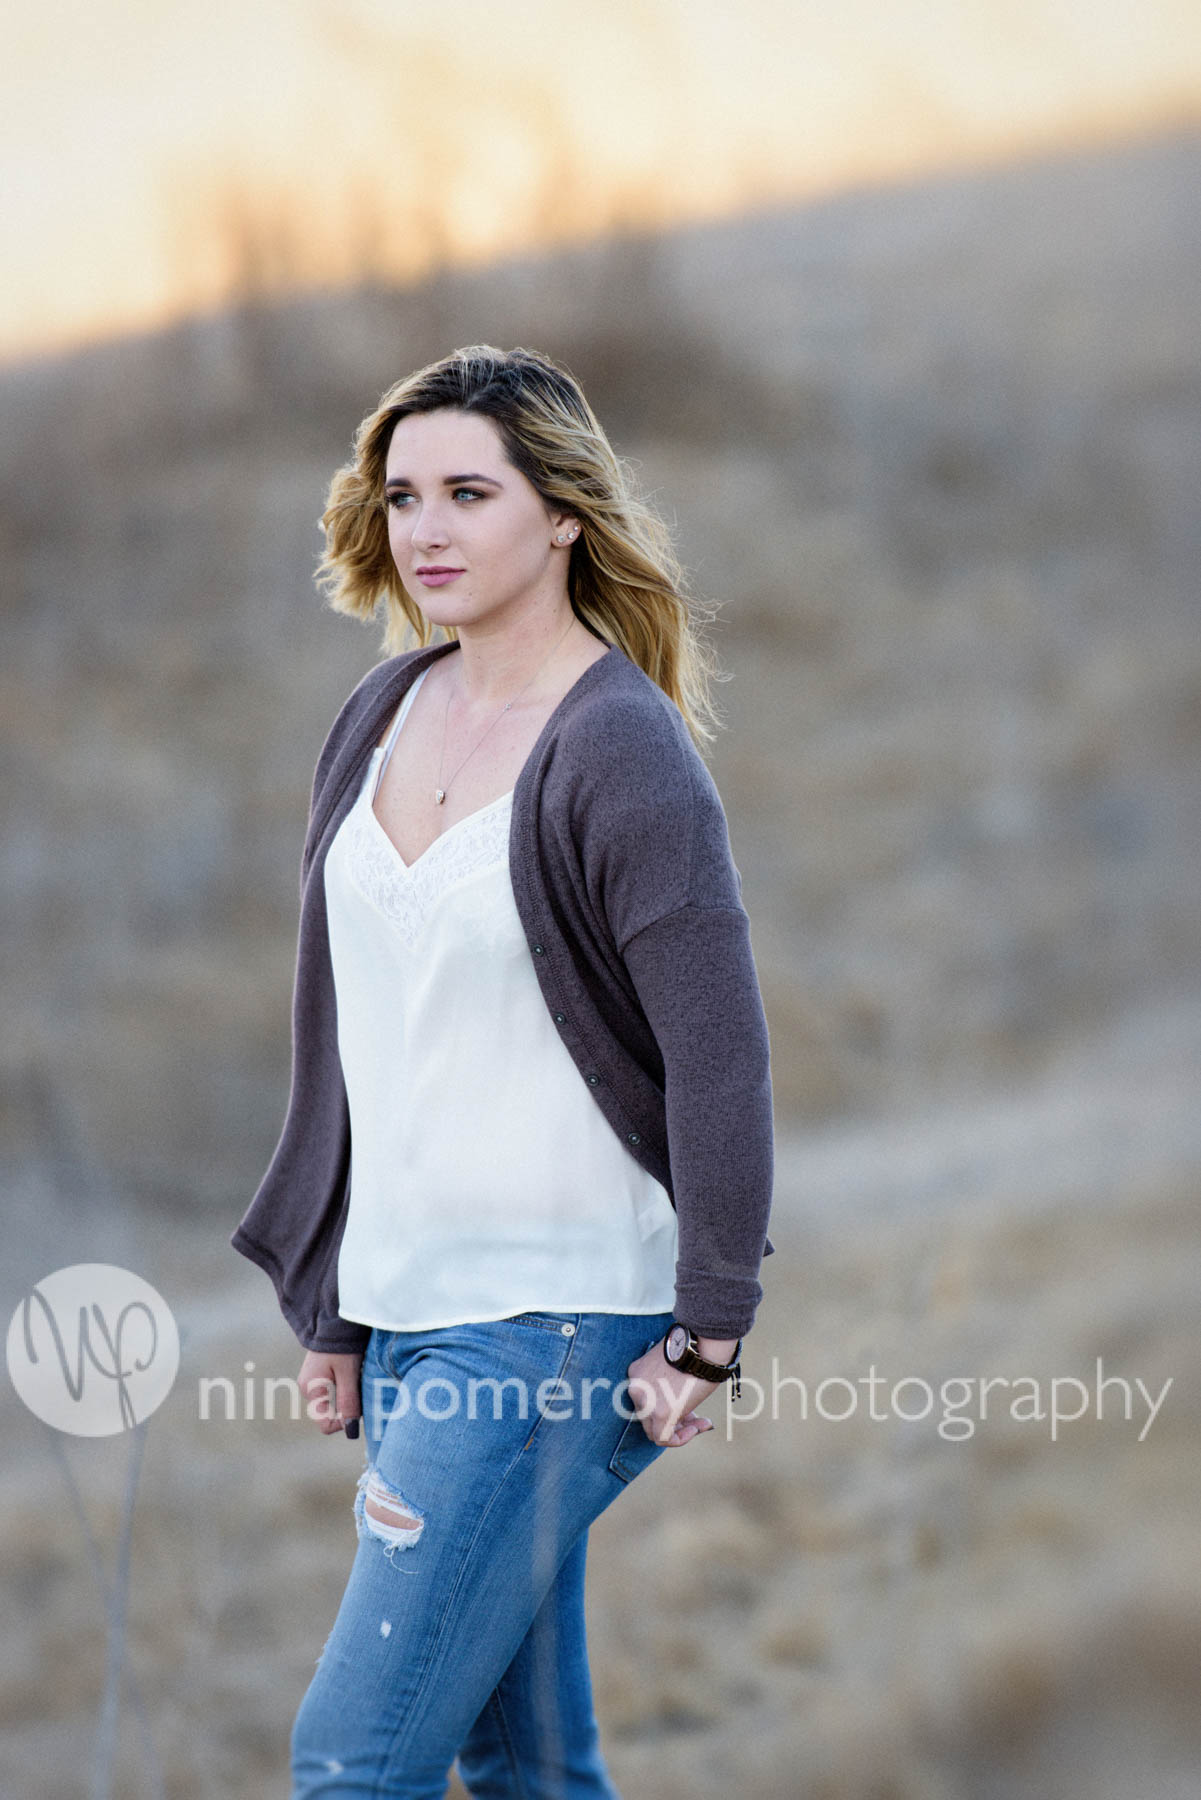 Sun setting behind teen for this senior portrait in San Ramon valley by Nina Pomeroy